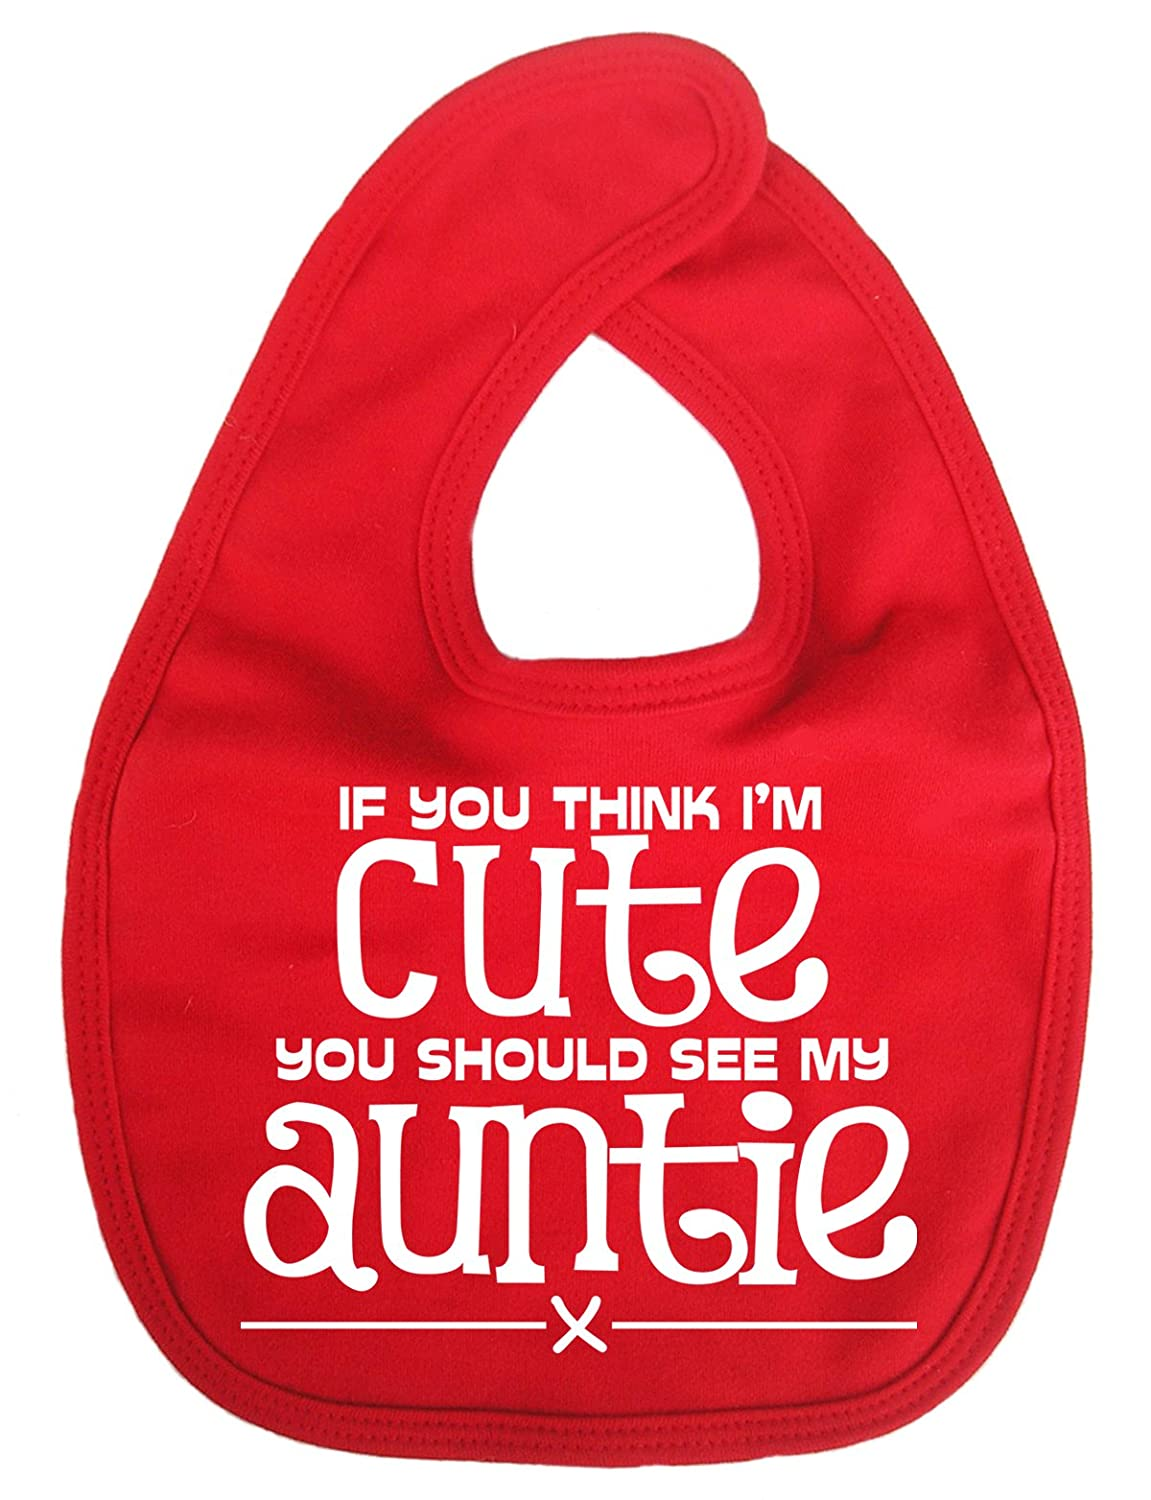 Dirty Fingers, If you think I'm cute, you should see my Auntie, Baby Unisex Bib If you think I' m cute Yellow DFBIBcuteauntieY